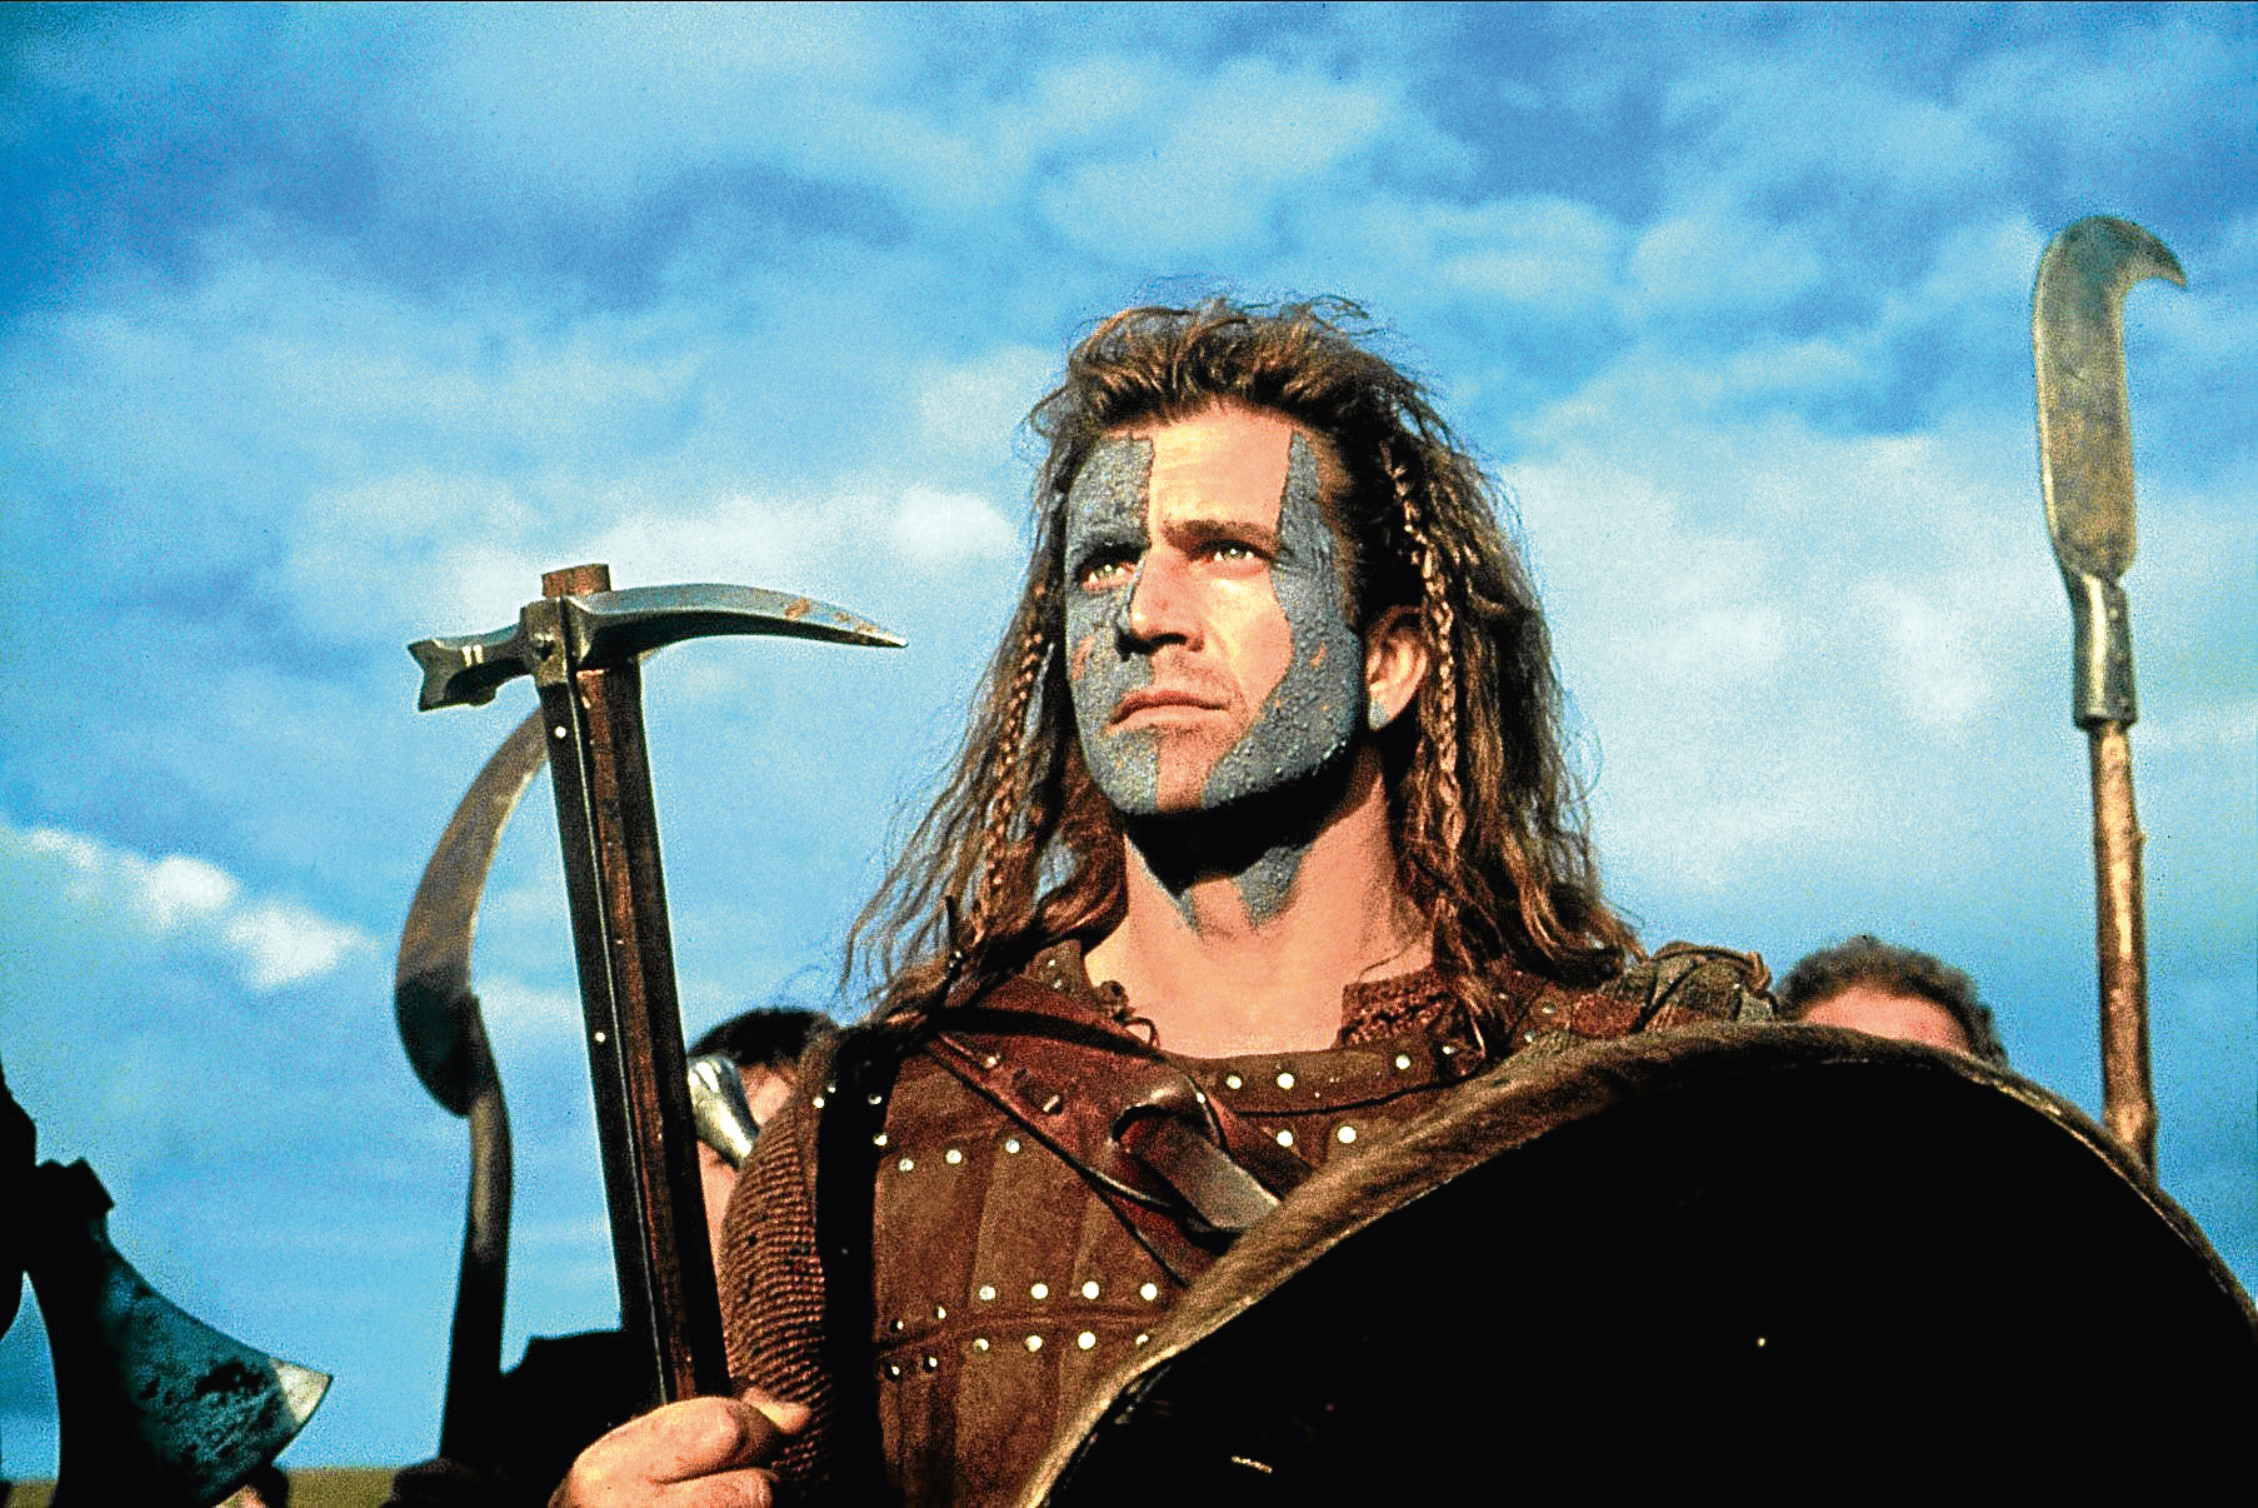 Mel Gibson portrays William Wallace in the 1995 film Braveheart.